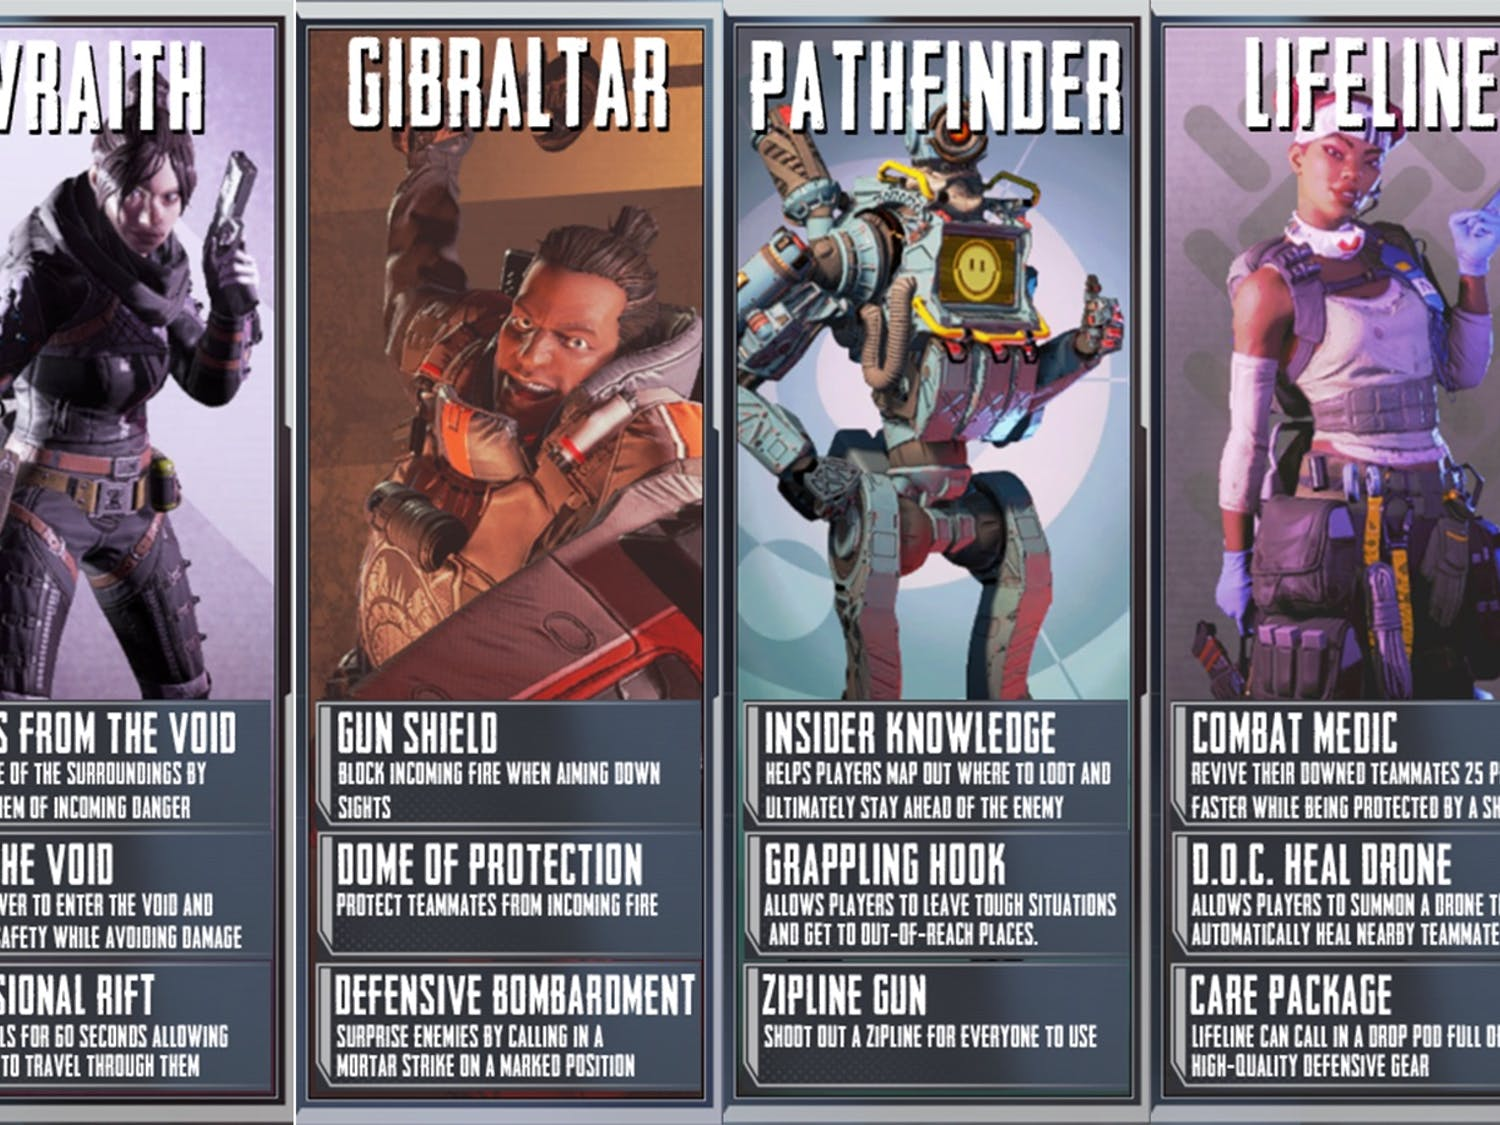 Apex Legend players can choose from these eight legends, each listed with their three abilities, to play as.